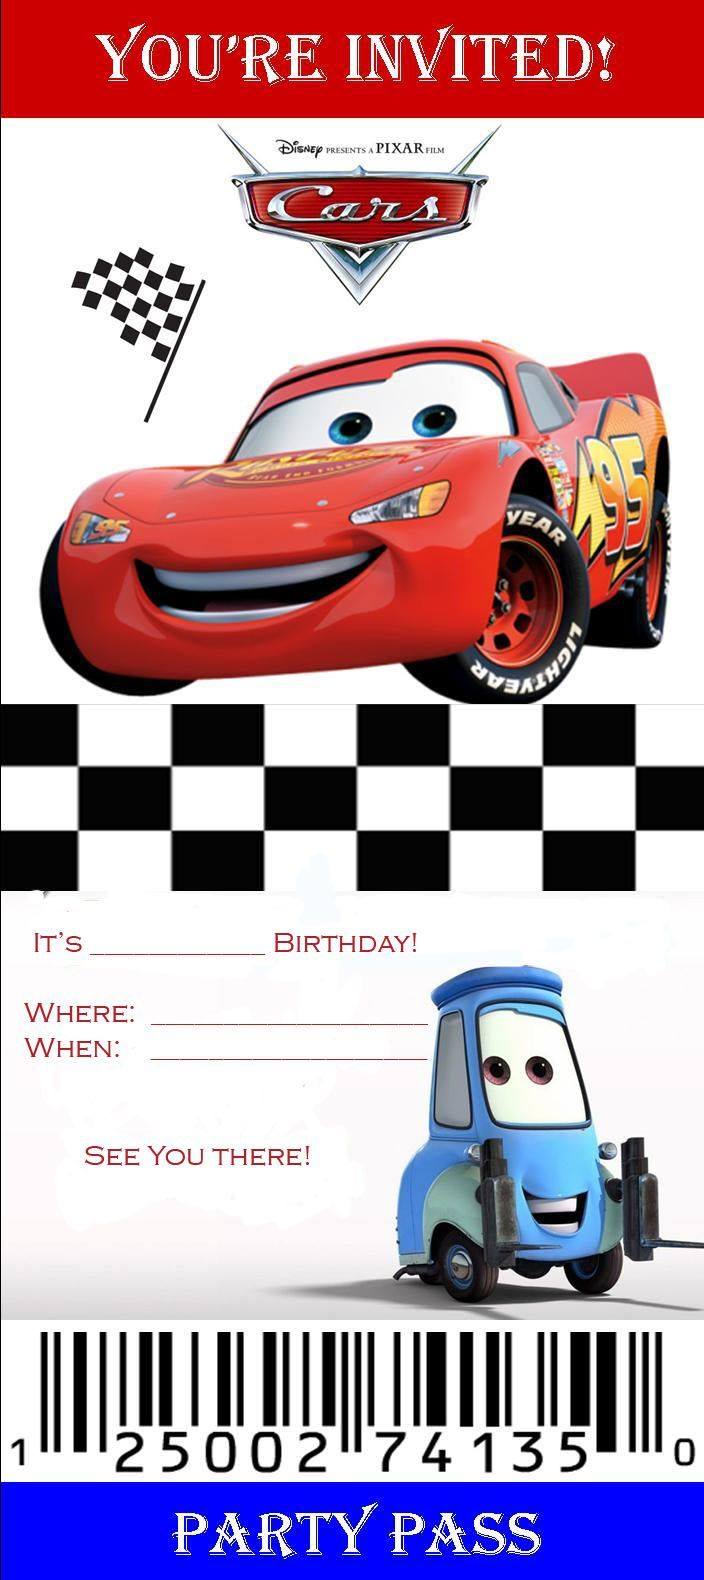 Free Printable Disney Cars Birthday Party Invitations 17 Best Images About Cars On P Cars Birthday Invitations Car Birthday Party Invitations Disney Cars Party